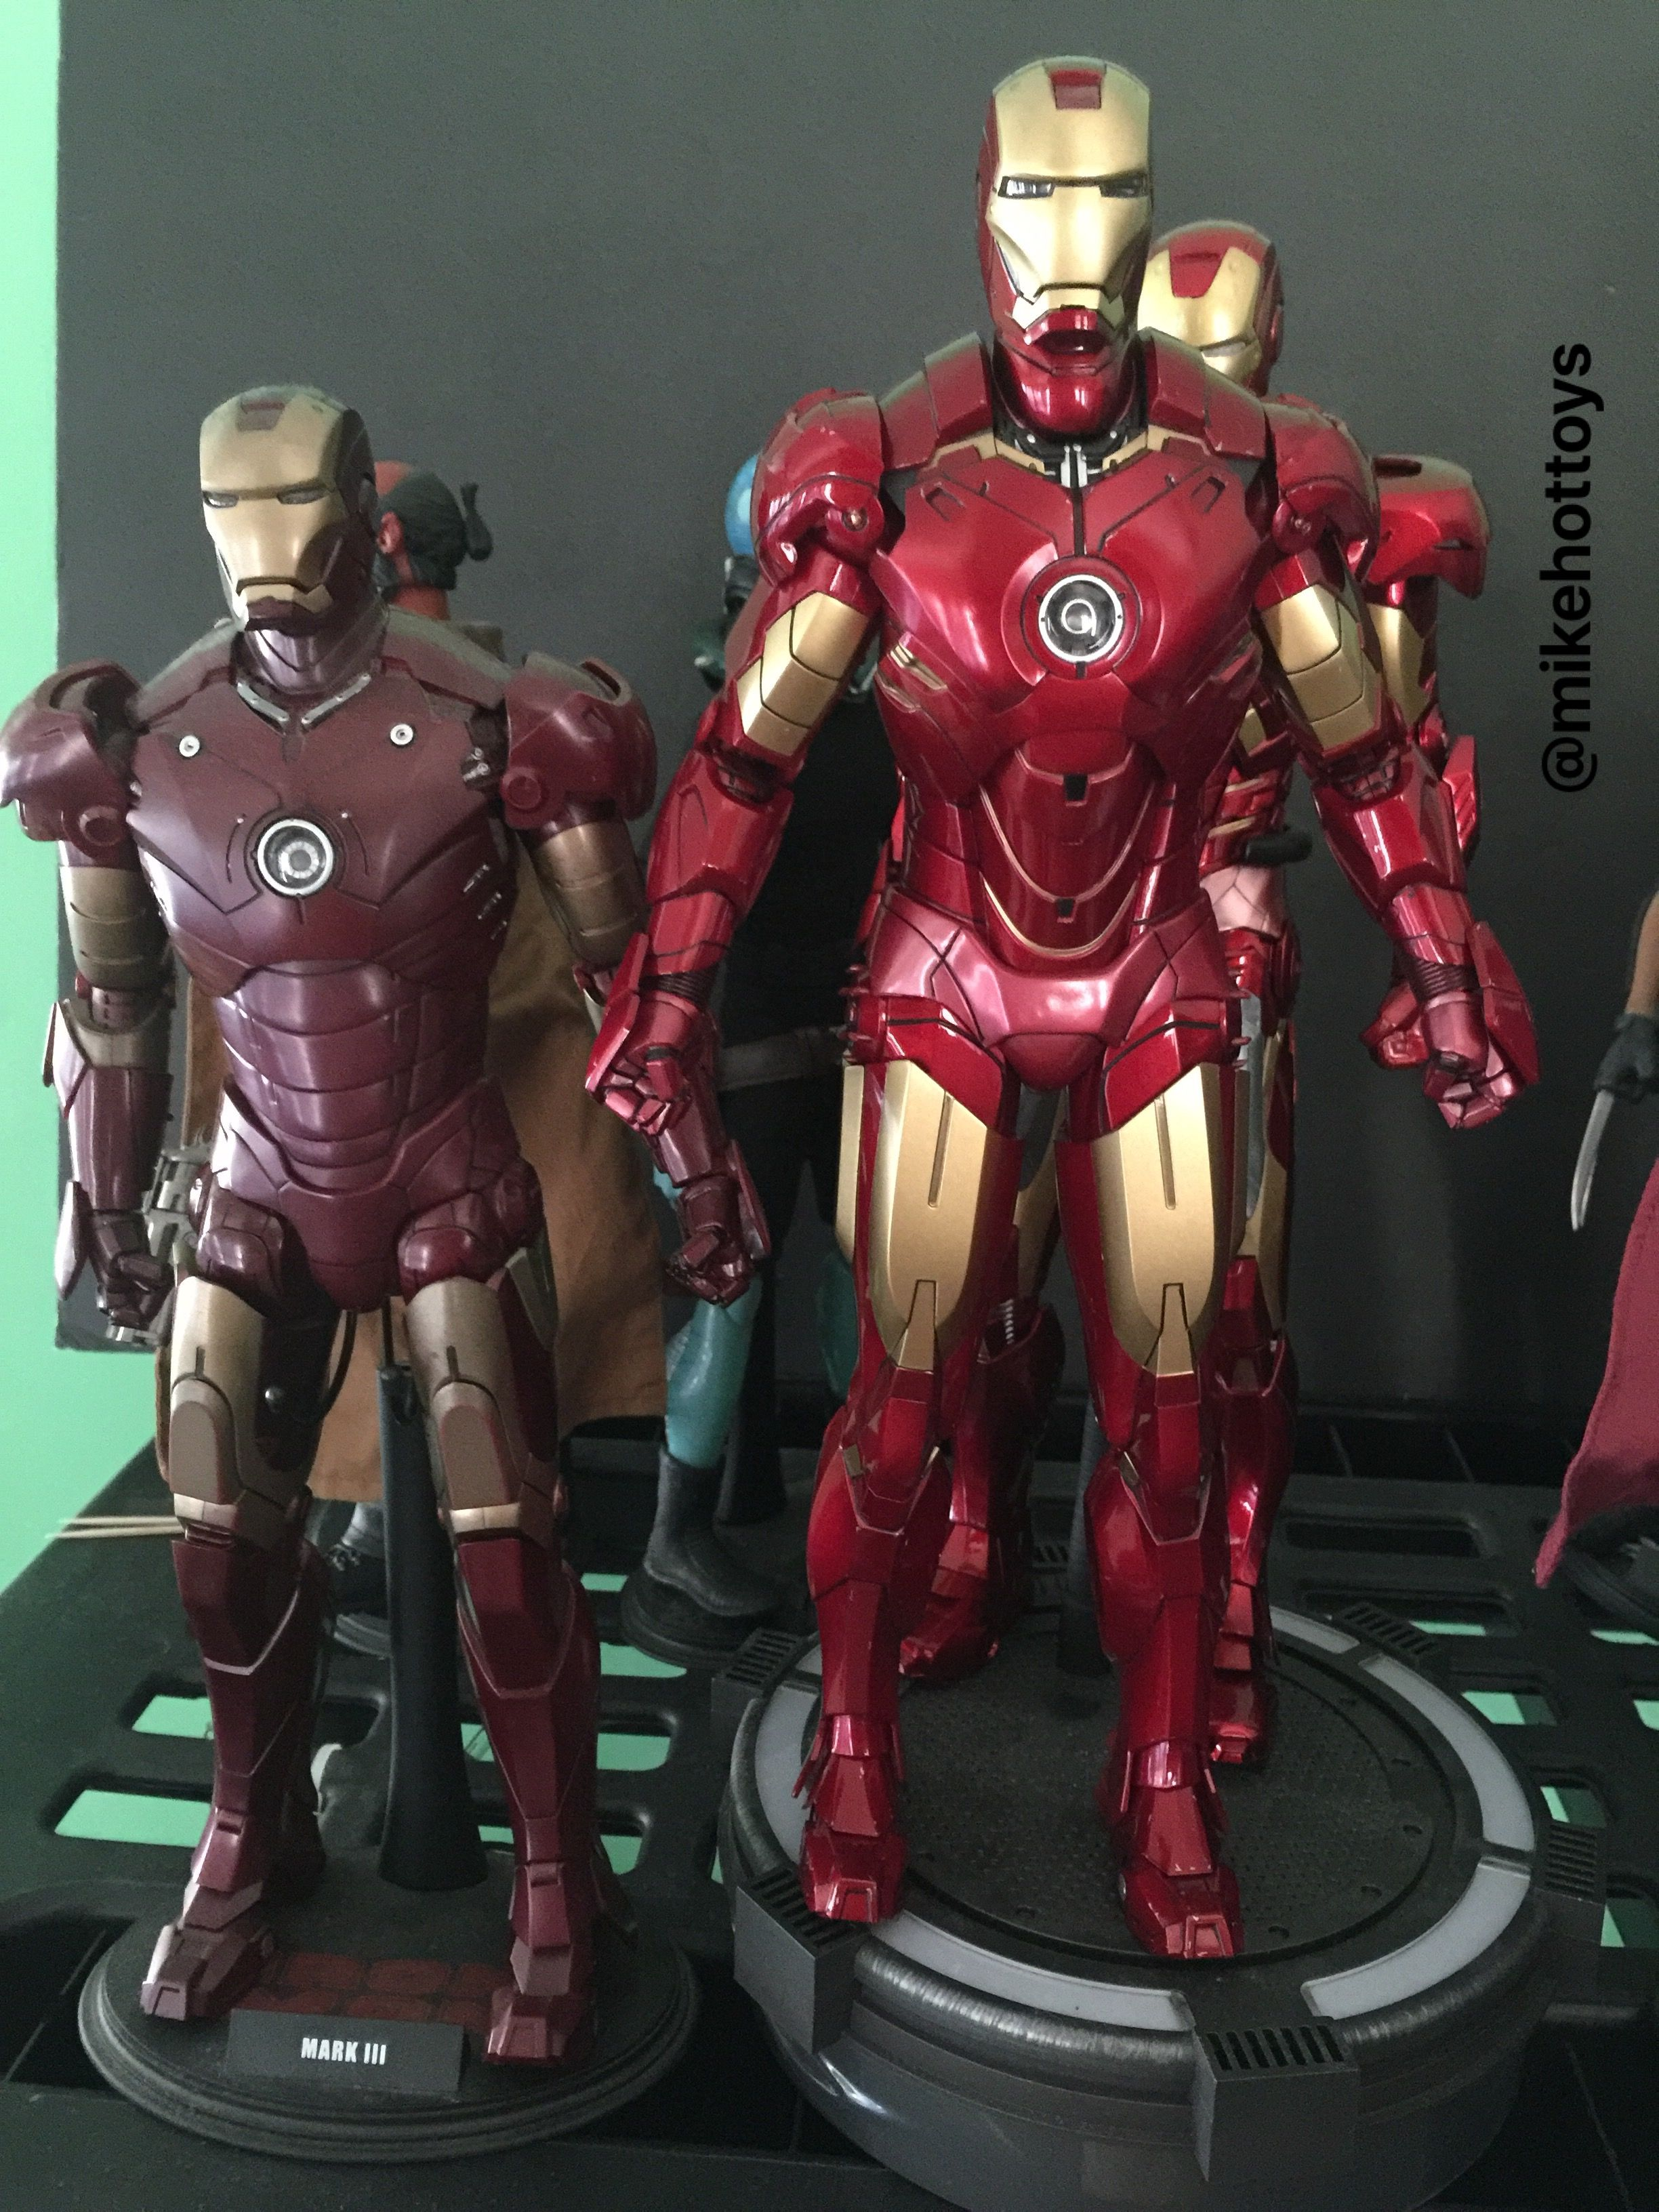 Pin By Mike Roe On Mikehottoys Hot Toys Ironman Collection Iron